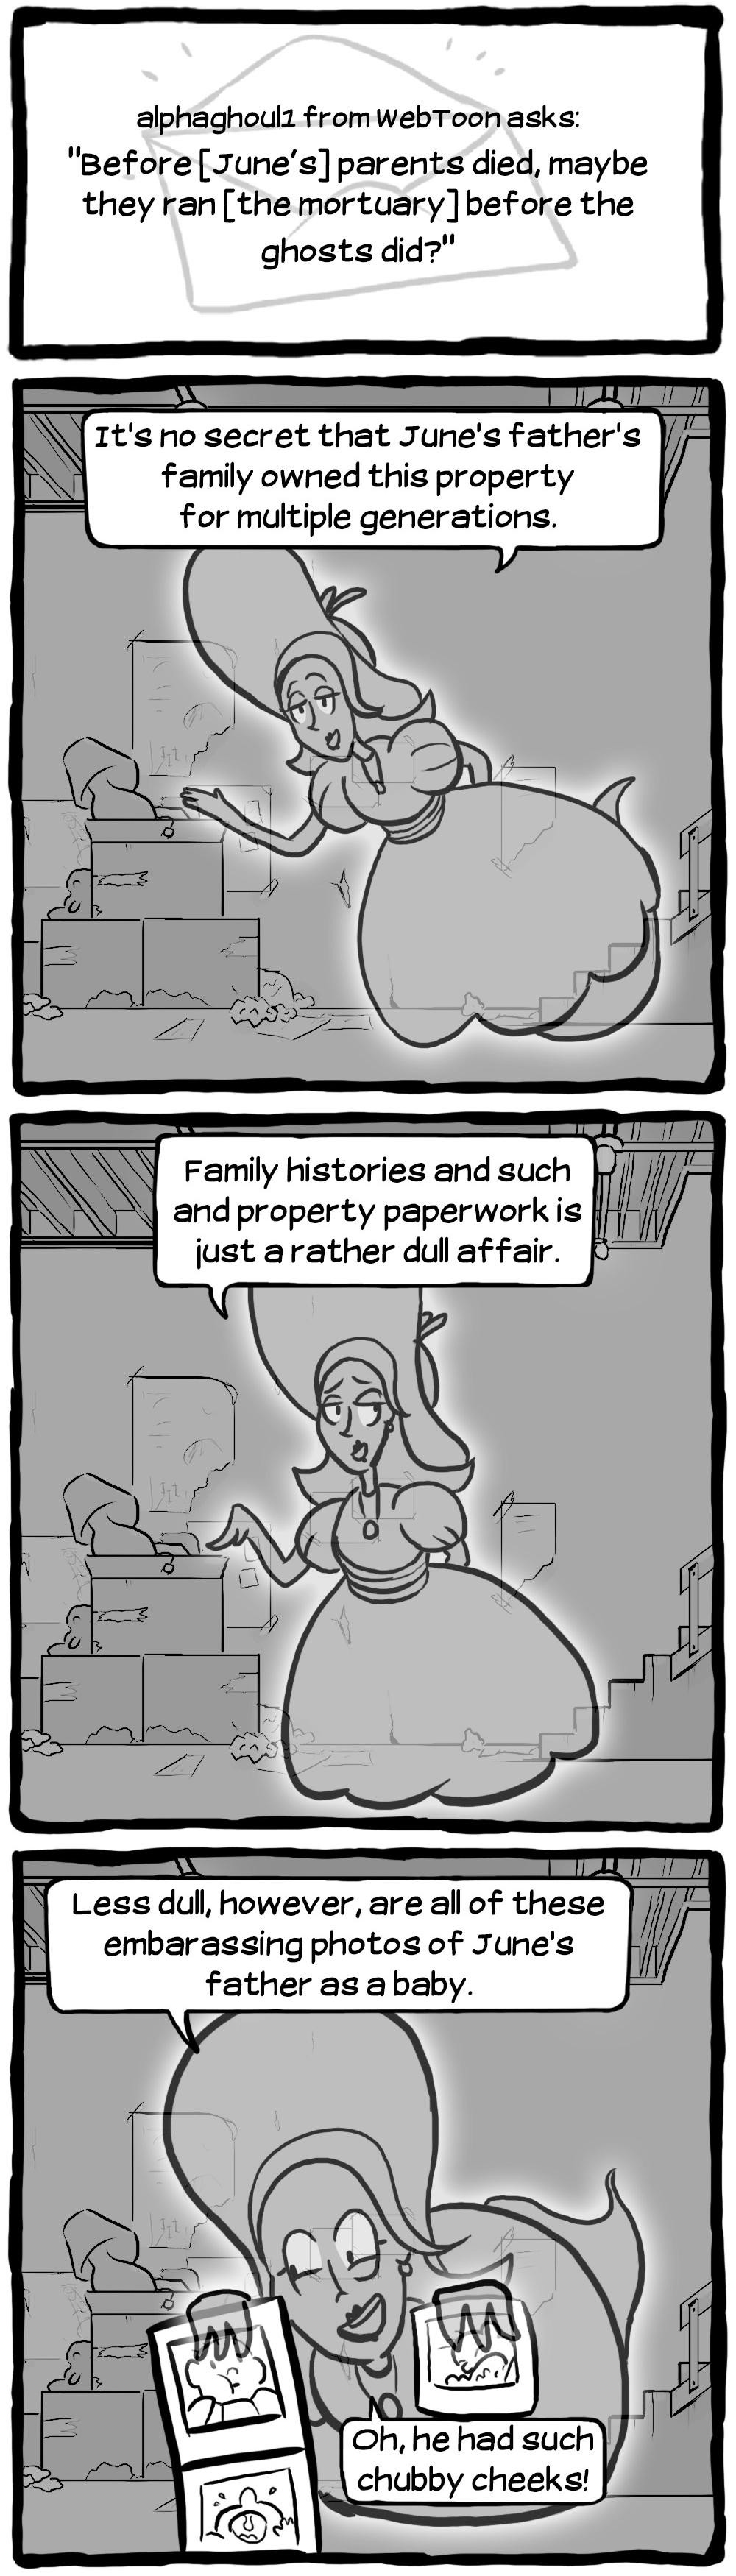 """[alphaghoul1 from WebToon asks: """"Before [June's] parents died, maybe they ran [the mortuary] before the ghosts did?""""] [Lady Plume: """"It's no secret that June's father's family owned this property for multiple generations.""""] [Lady Plume: """"Family histories and such and property paperwork is just a rather dull affair.""""] [Lady Plume: """"Less dull, however, are all of these embarrassing photos of June's father as a baby.""""]"""